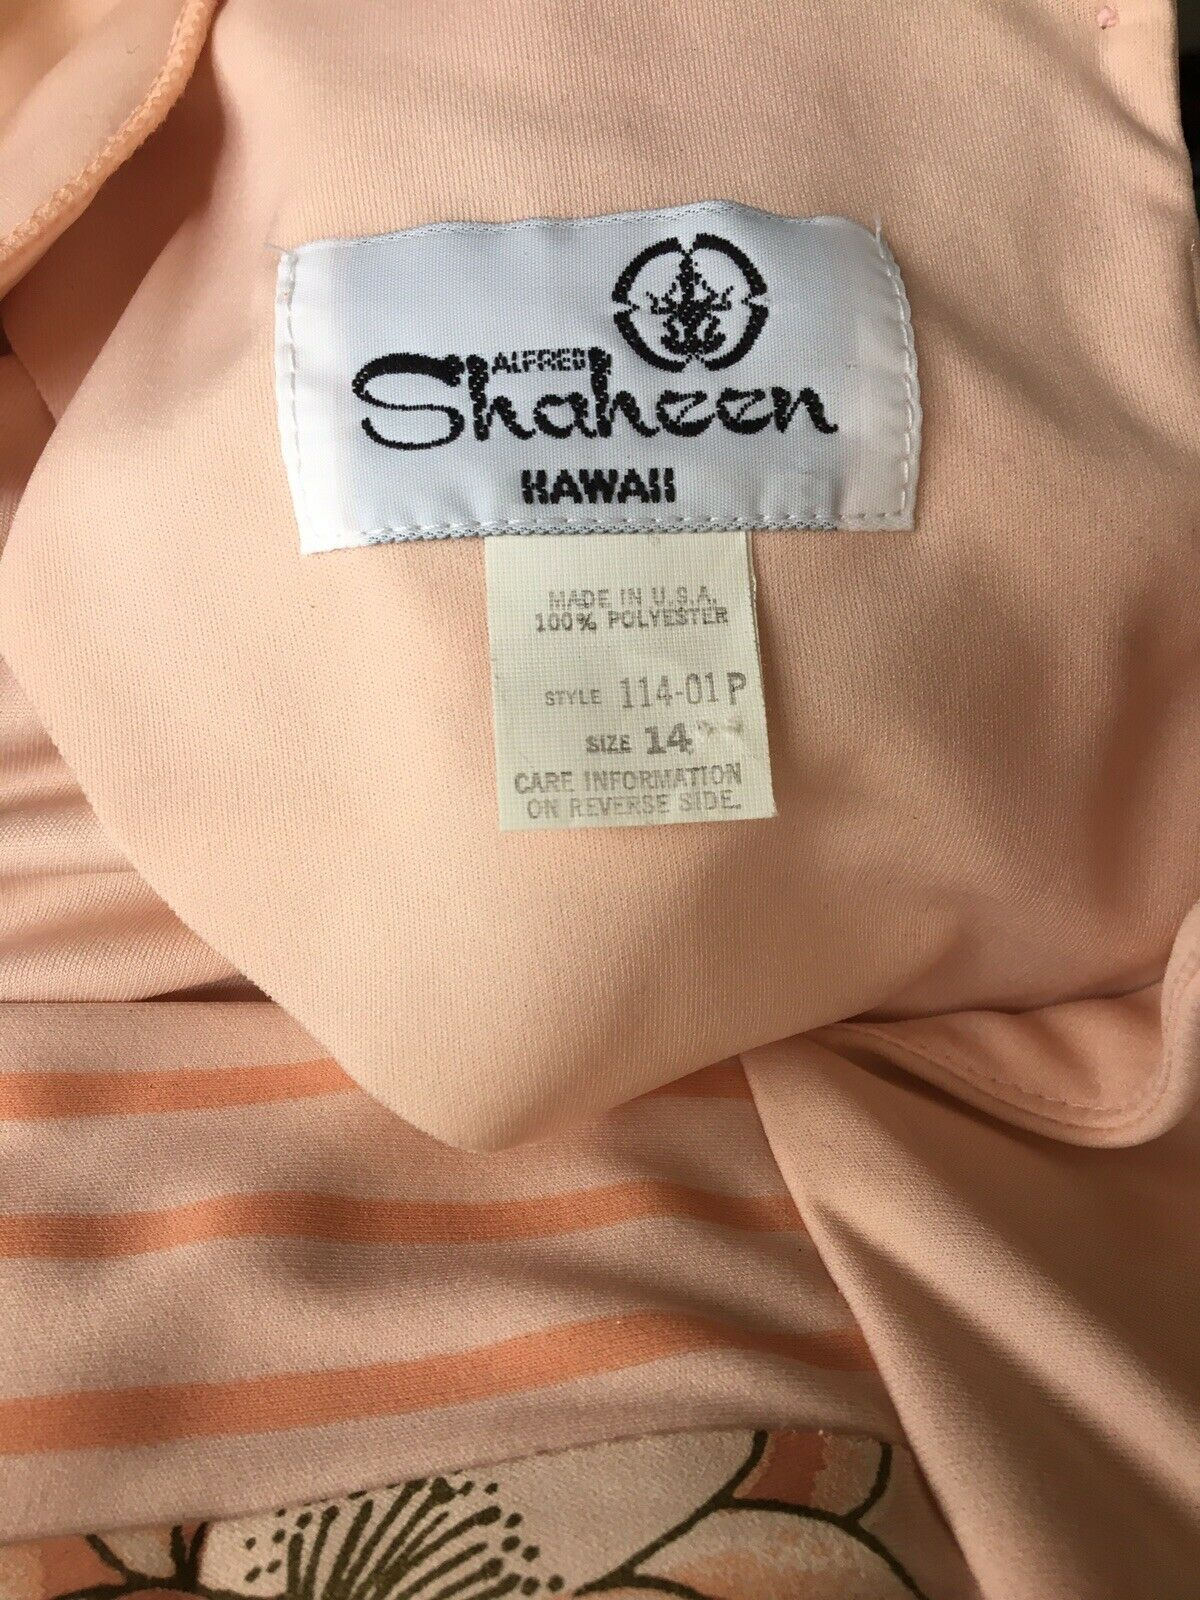 Vintage 1980's Alfred Shaheen Dress - image 3